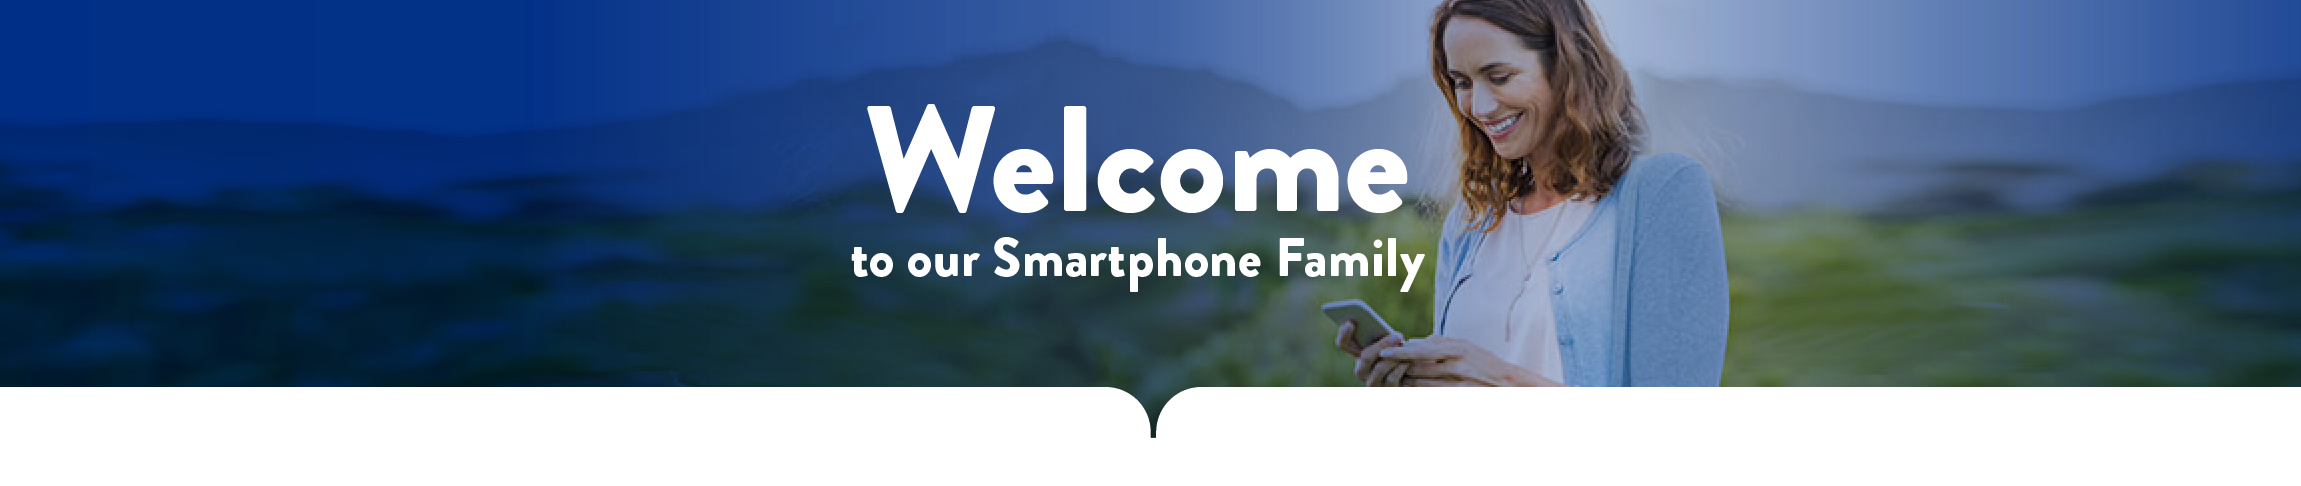 WELCOME TO OUR SMARTPHONE FAMILY